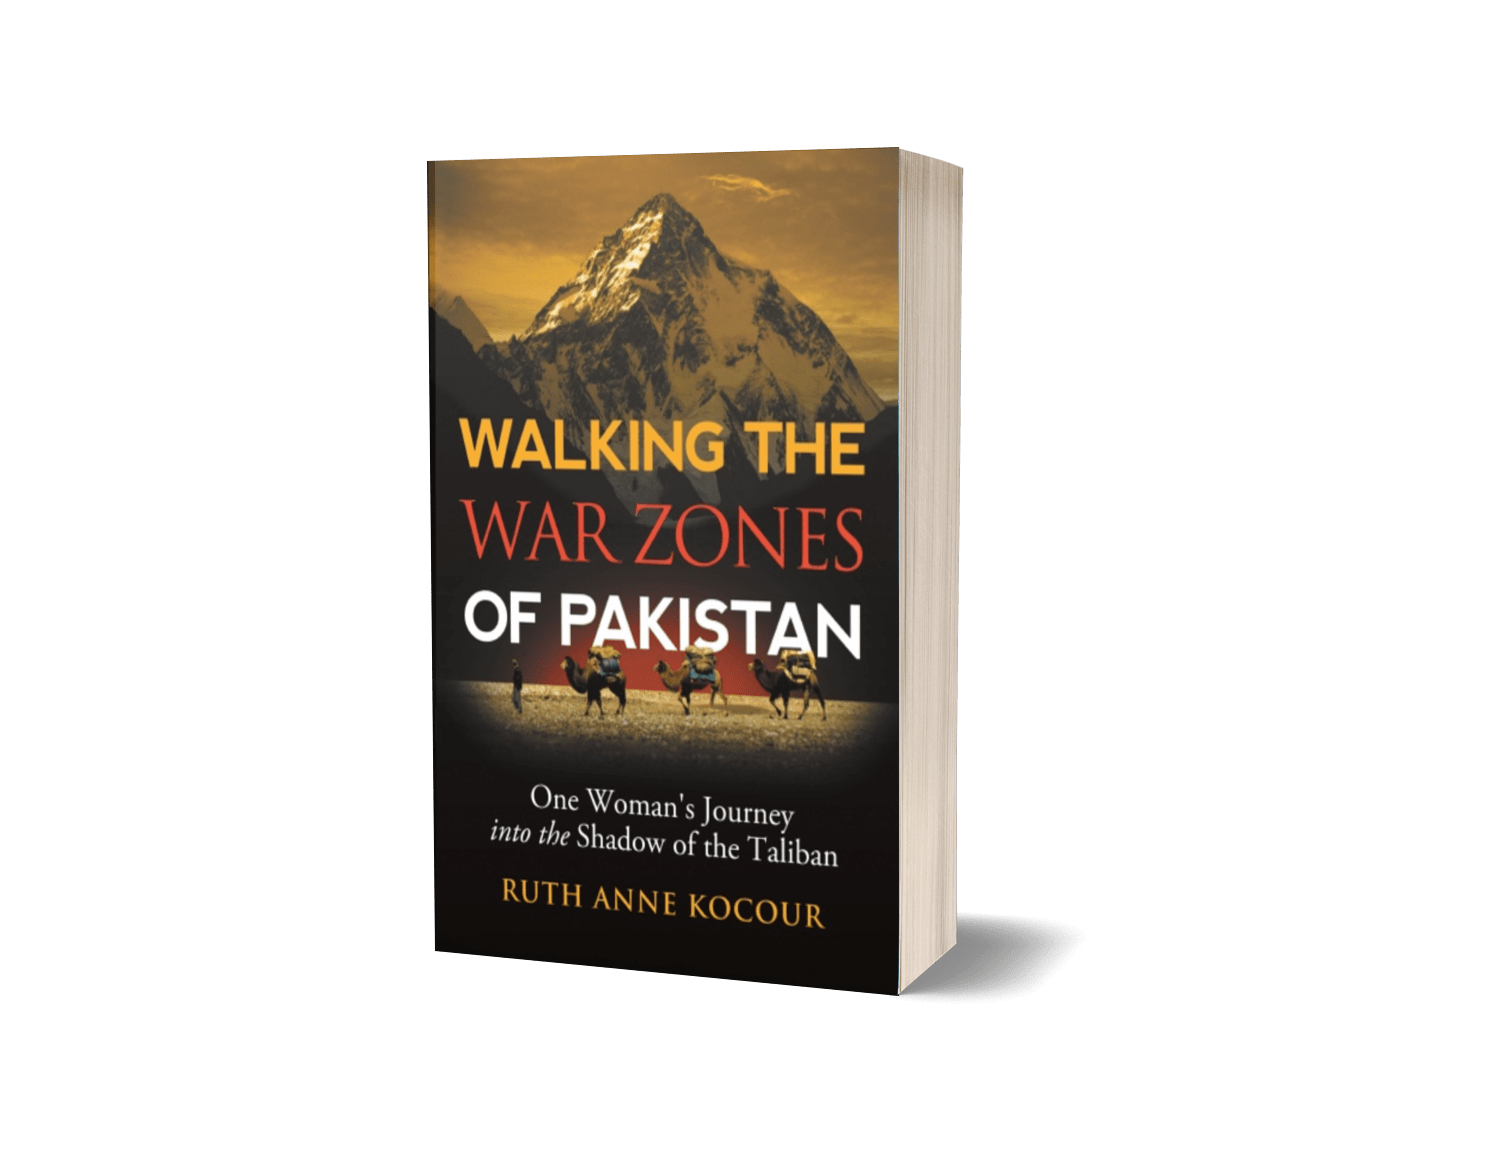 Walking the Warzones of Pakistan: One Woman's Journey into the Shadow of the Taliban